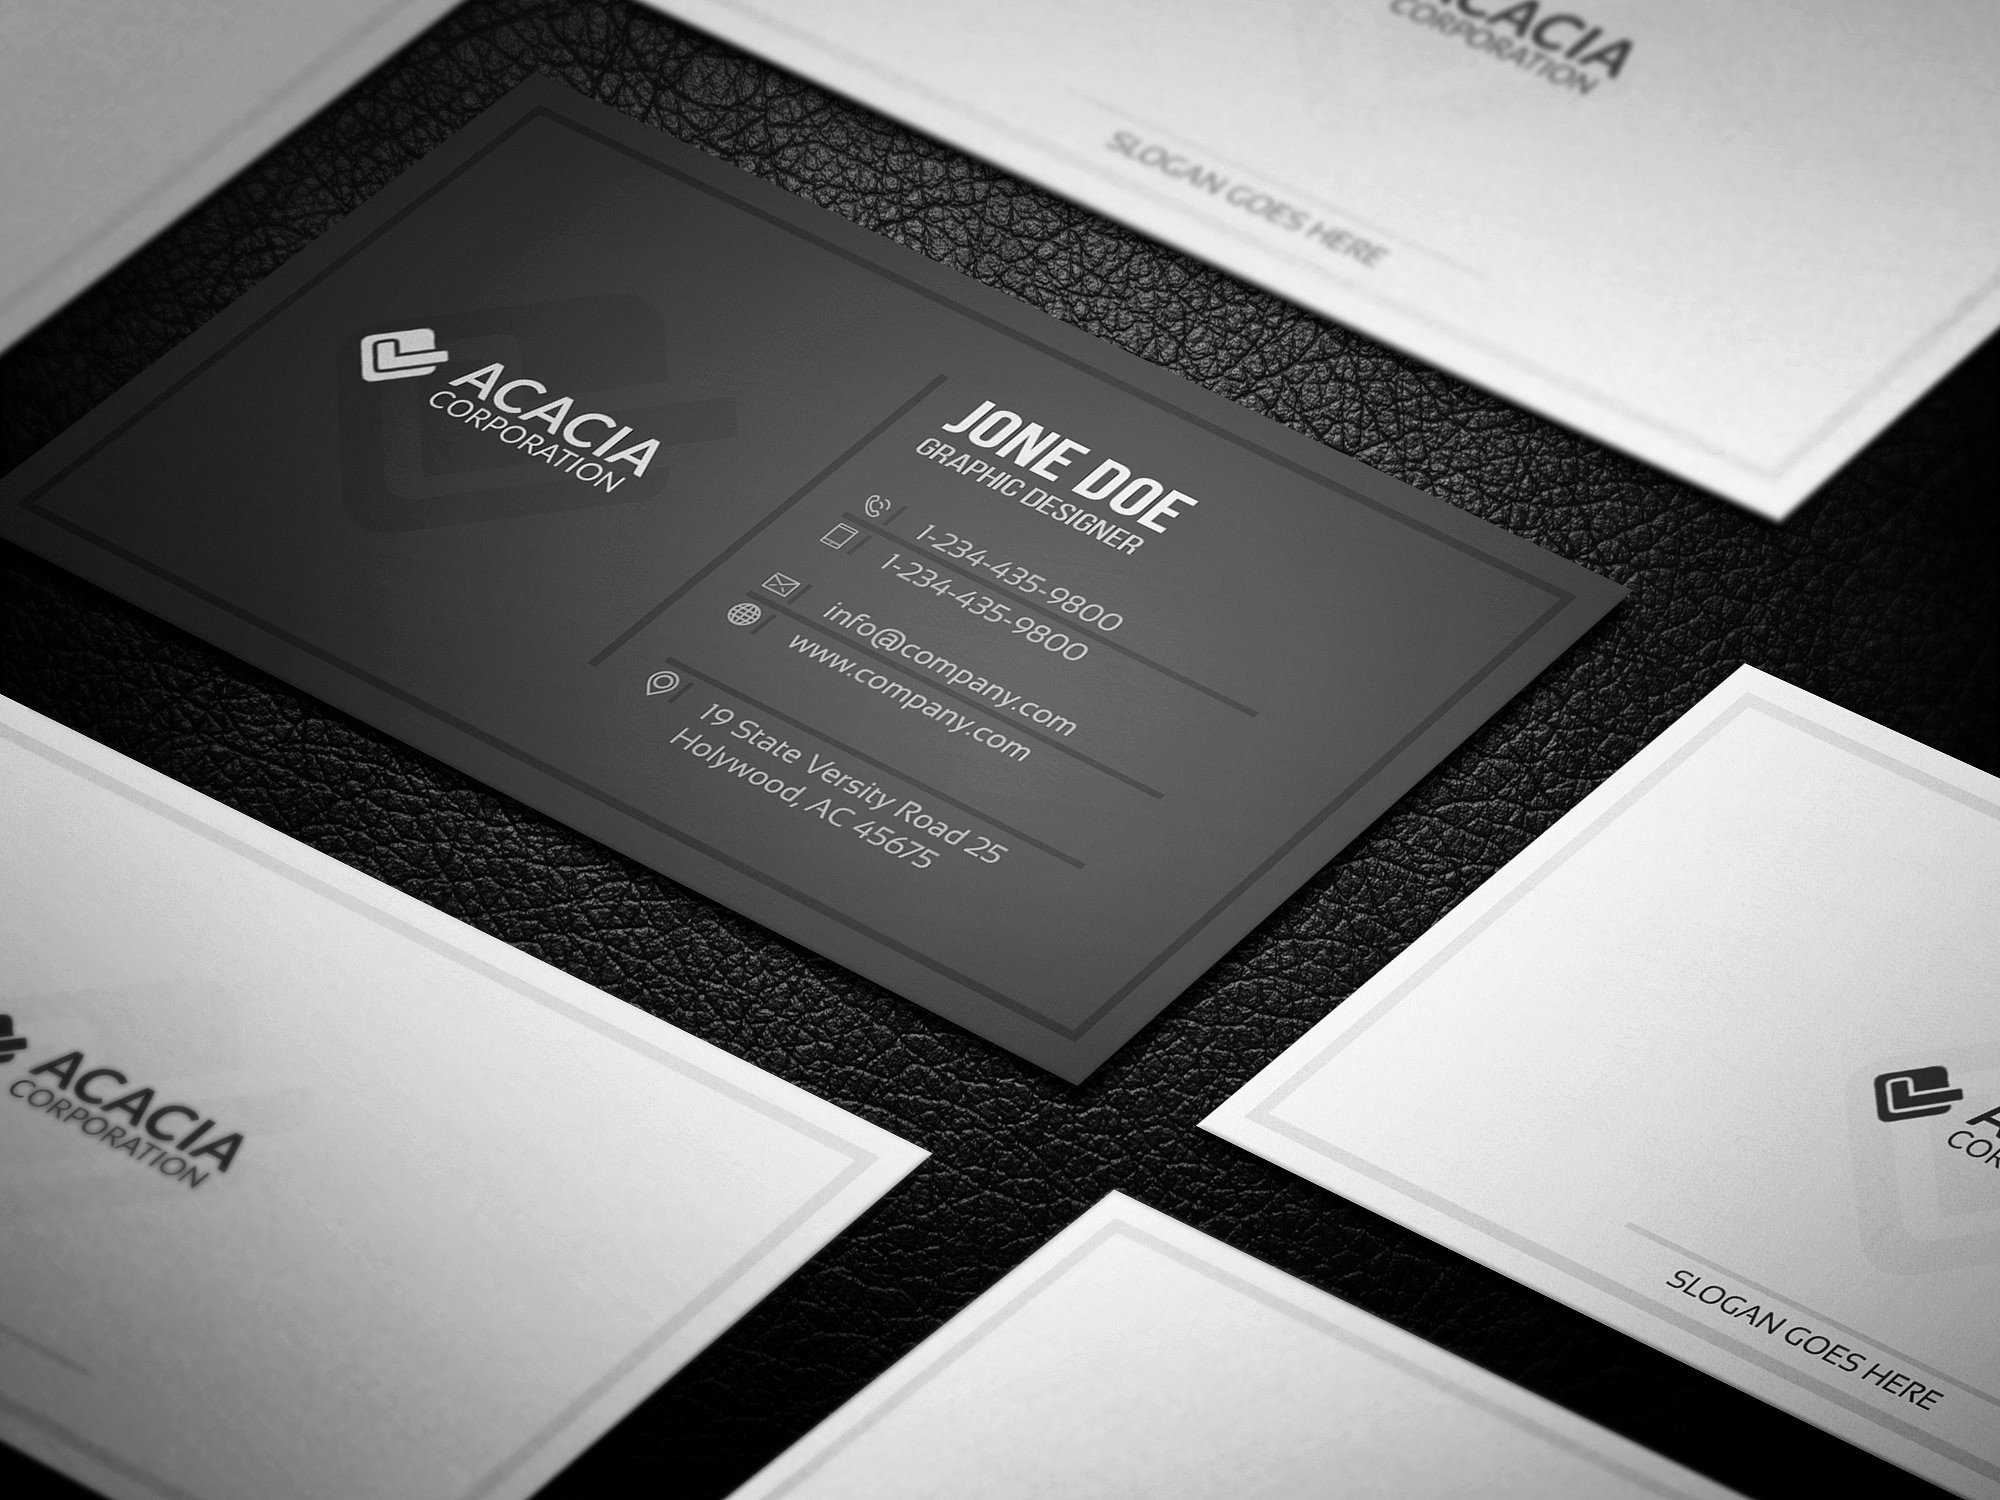 Royal Brites Business Card Template Awesome norokom Business Card Business Card Templates